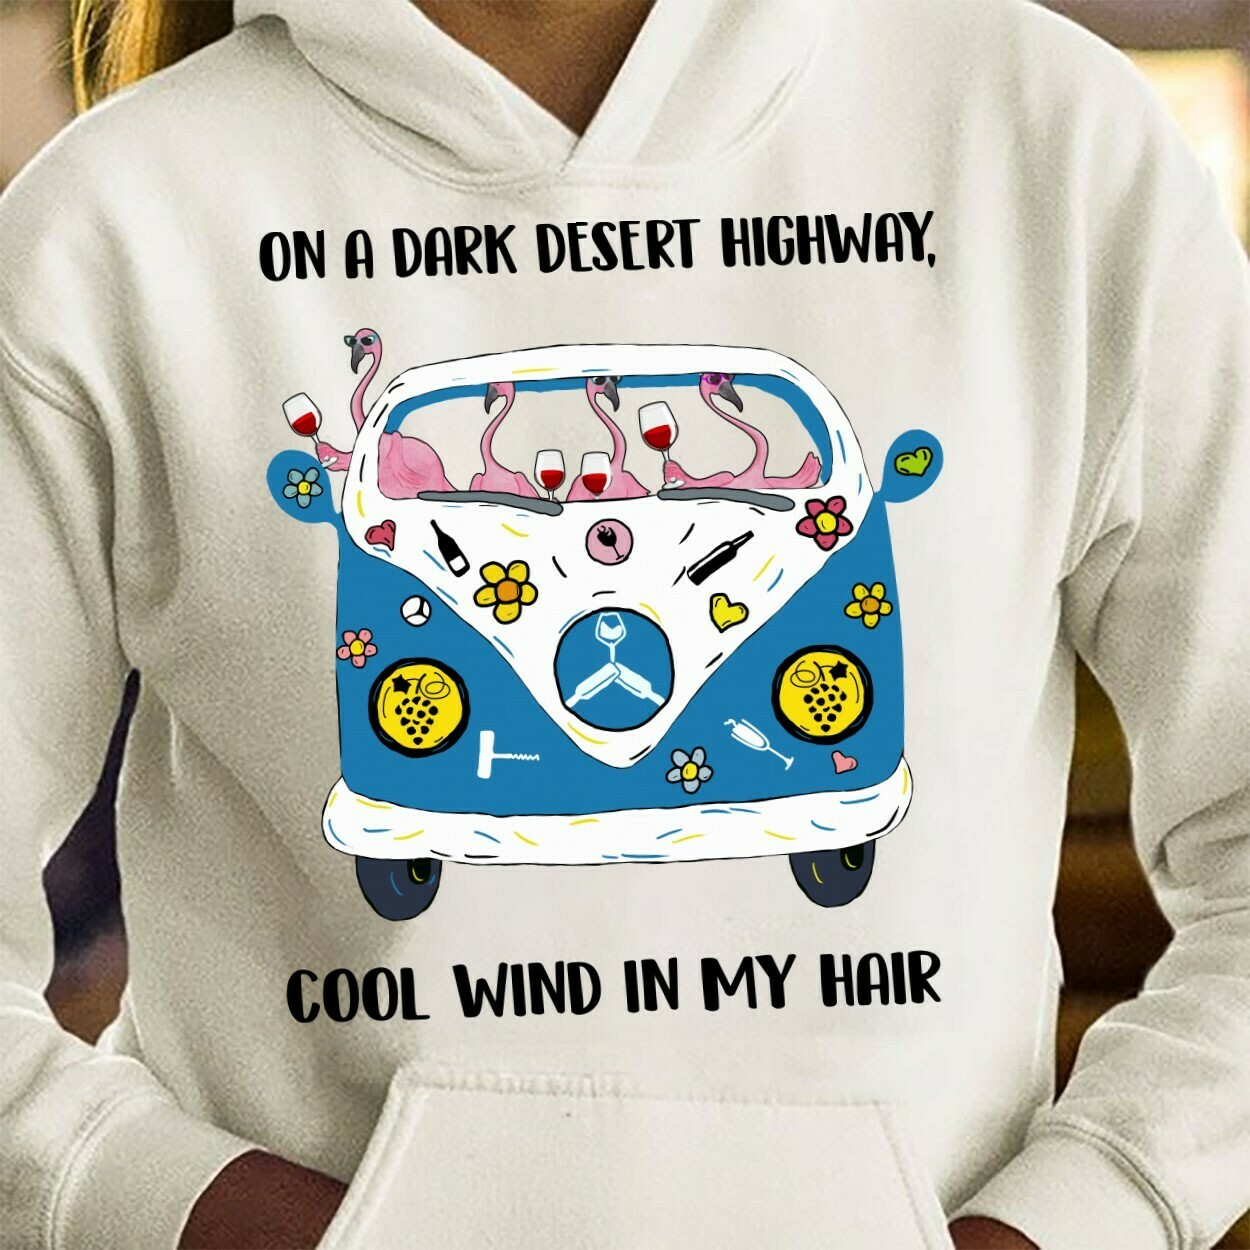 On A Dark Desert Highway, Cool Wind In My Hair - Hippie Flamingo Drink Wine Party Vacation For Friends Team Group Travel T Shirt Long Sleeve Sweatshirt Hoodie Jolly Family Gifts